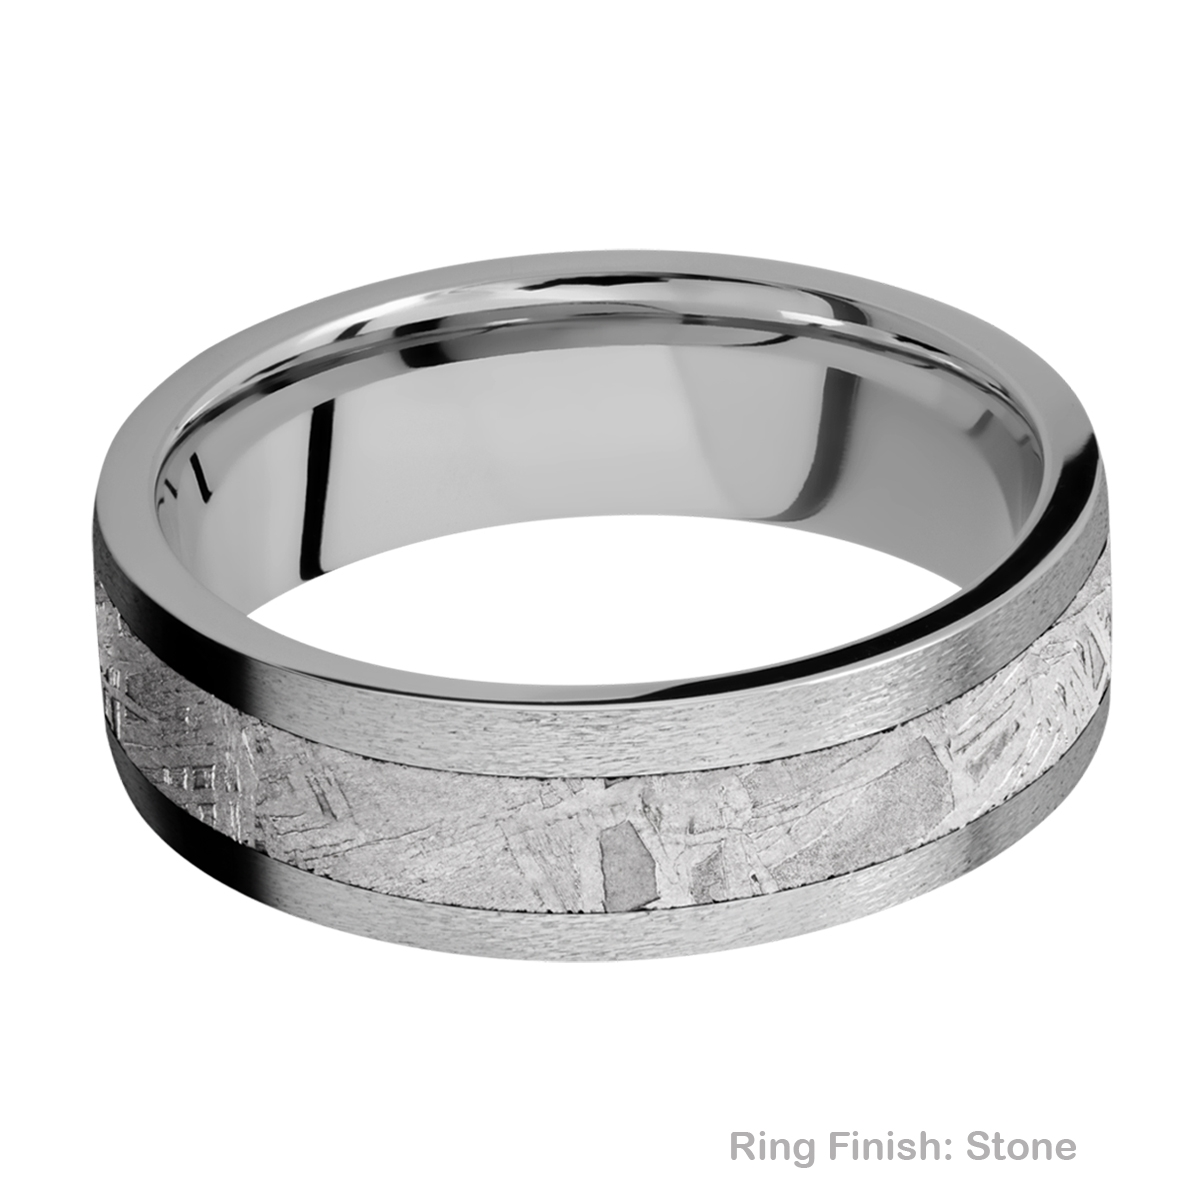 Lashbrook 7F14/METEORITE Titanium Wedding Ring or Band Alternative View 6